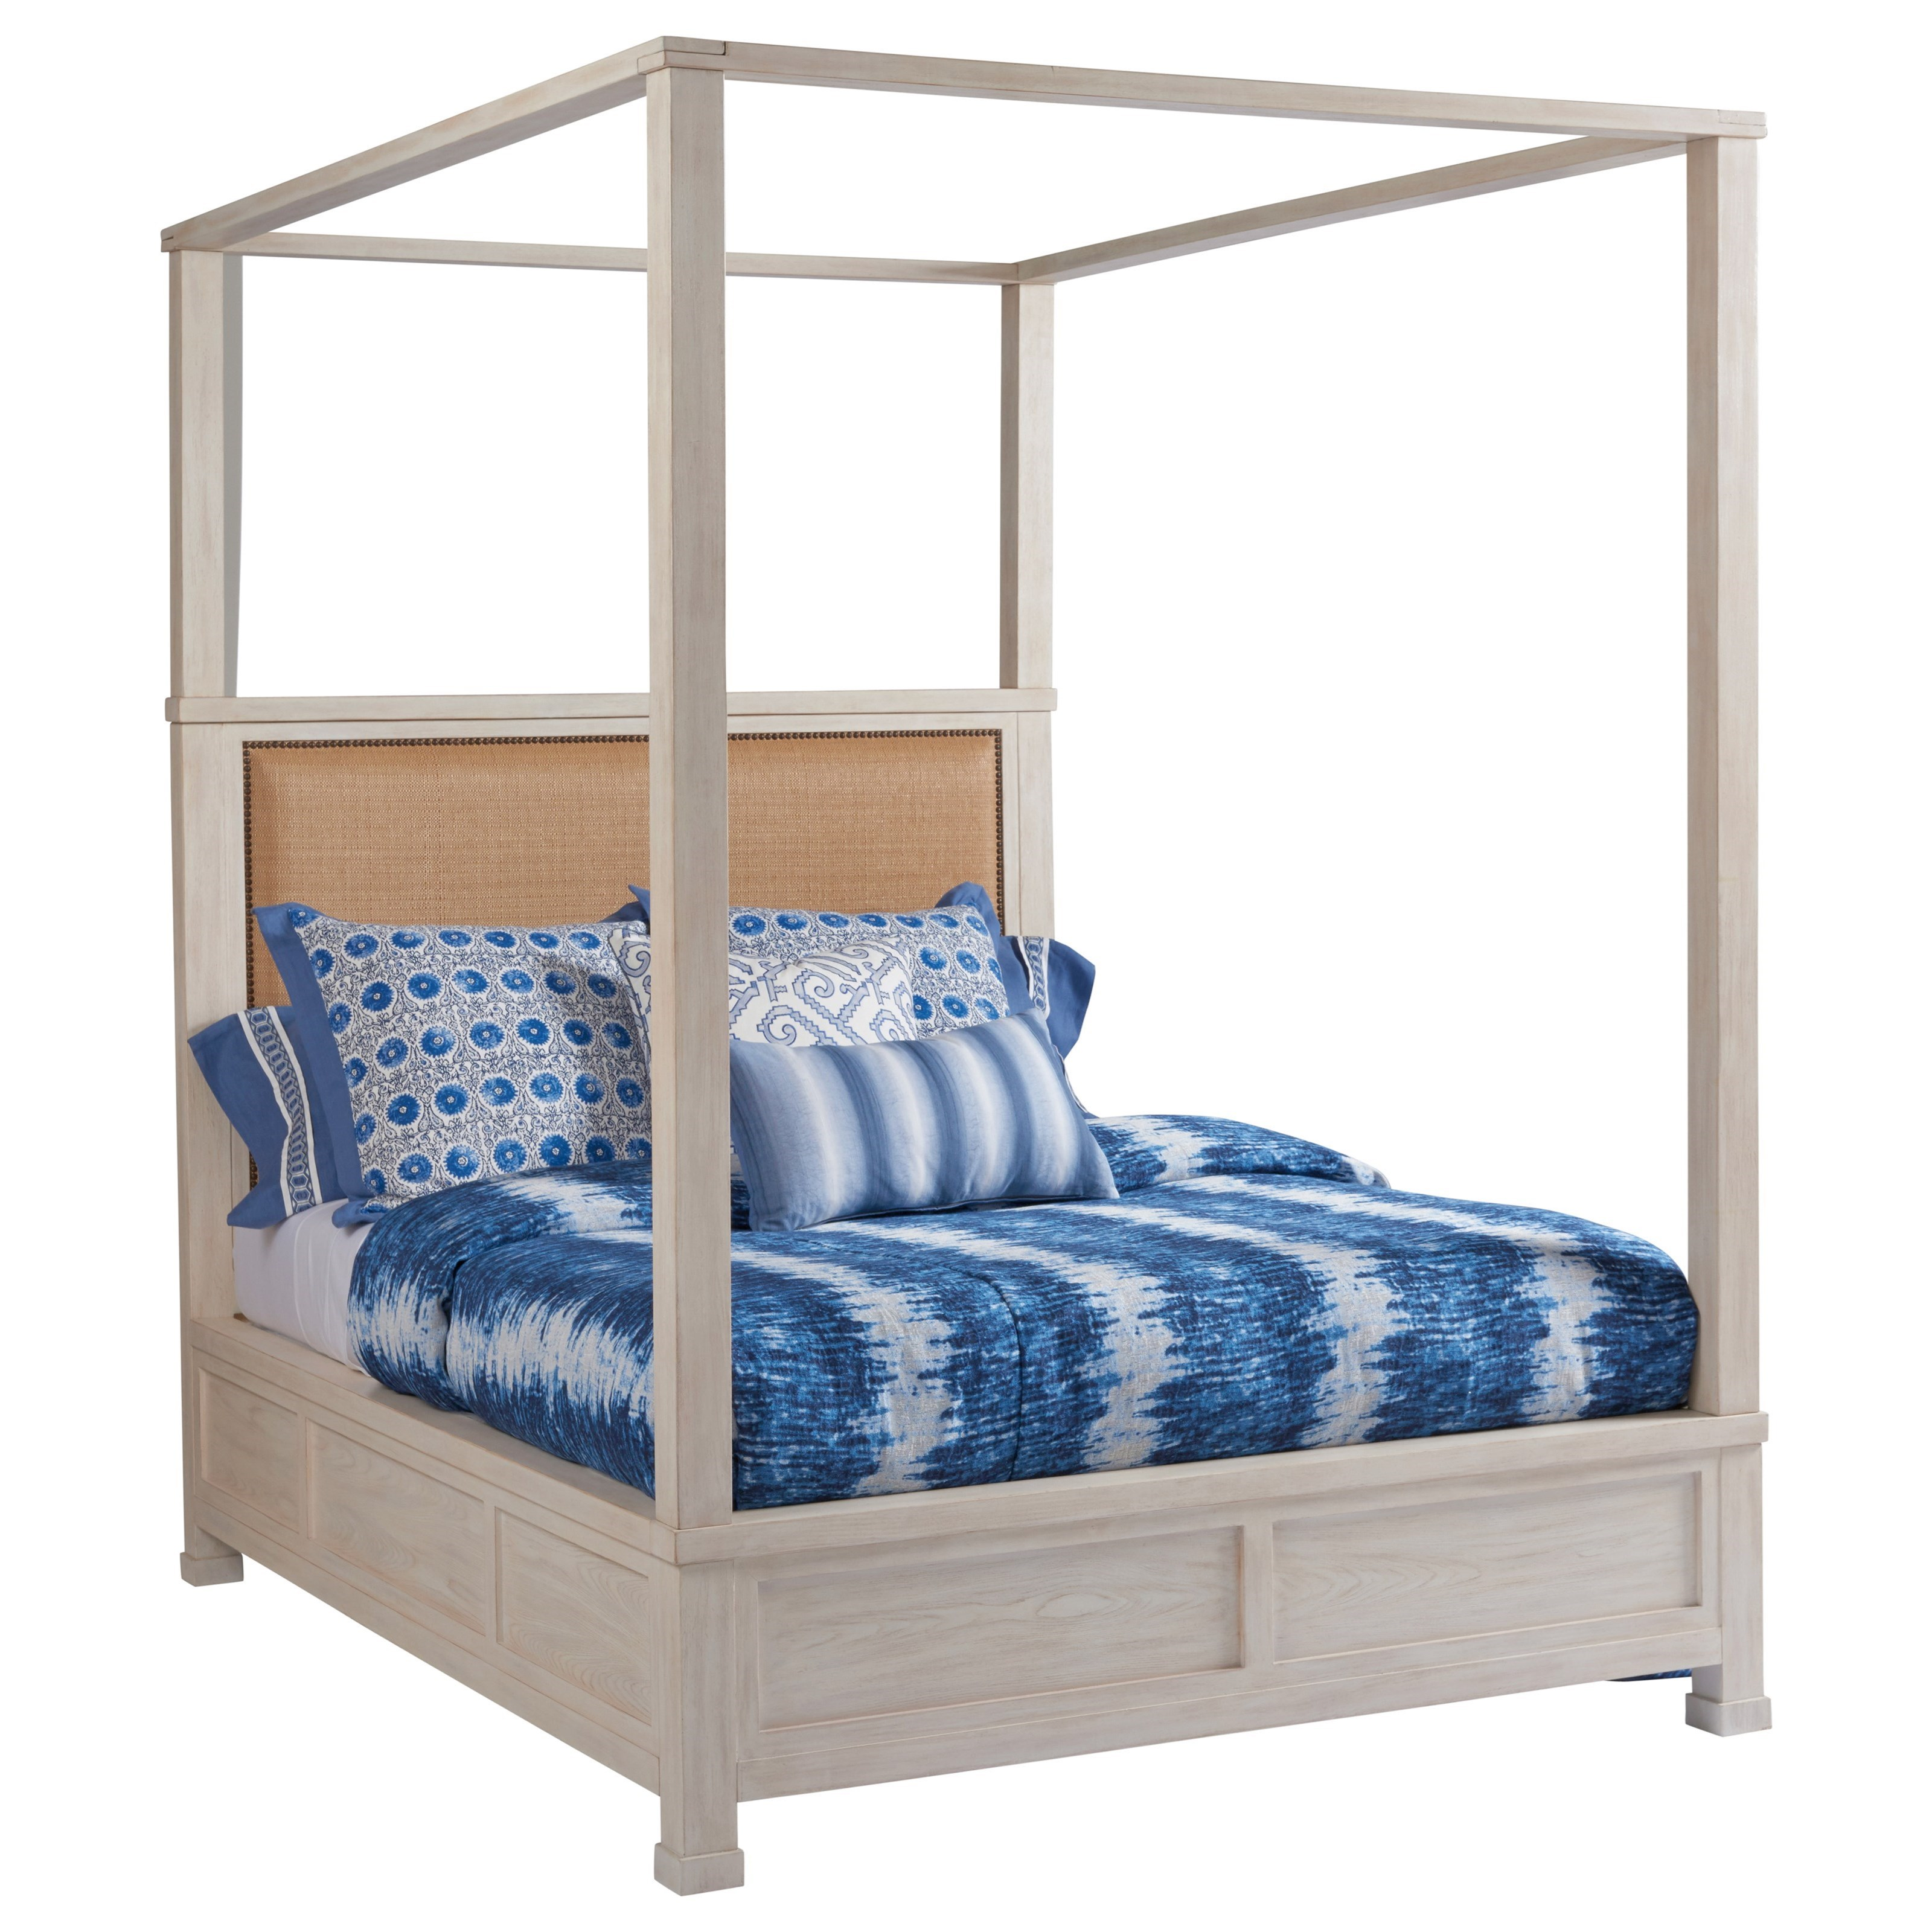 Shorecliff Canopy Bed 5/0 Queen